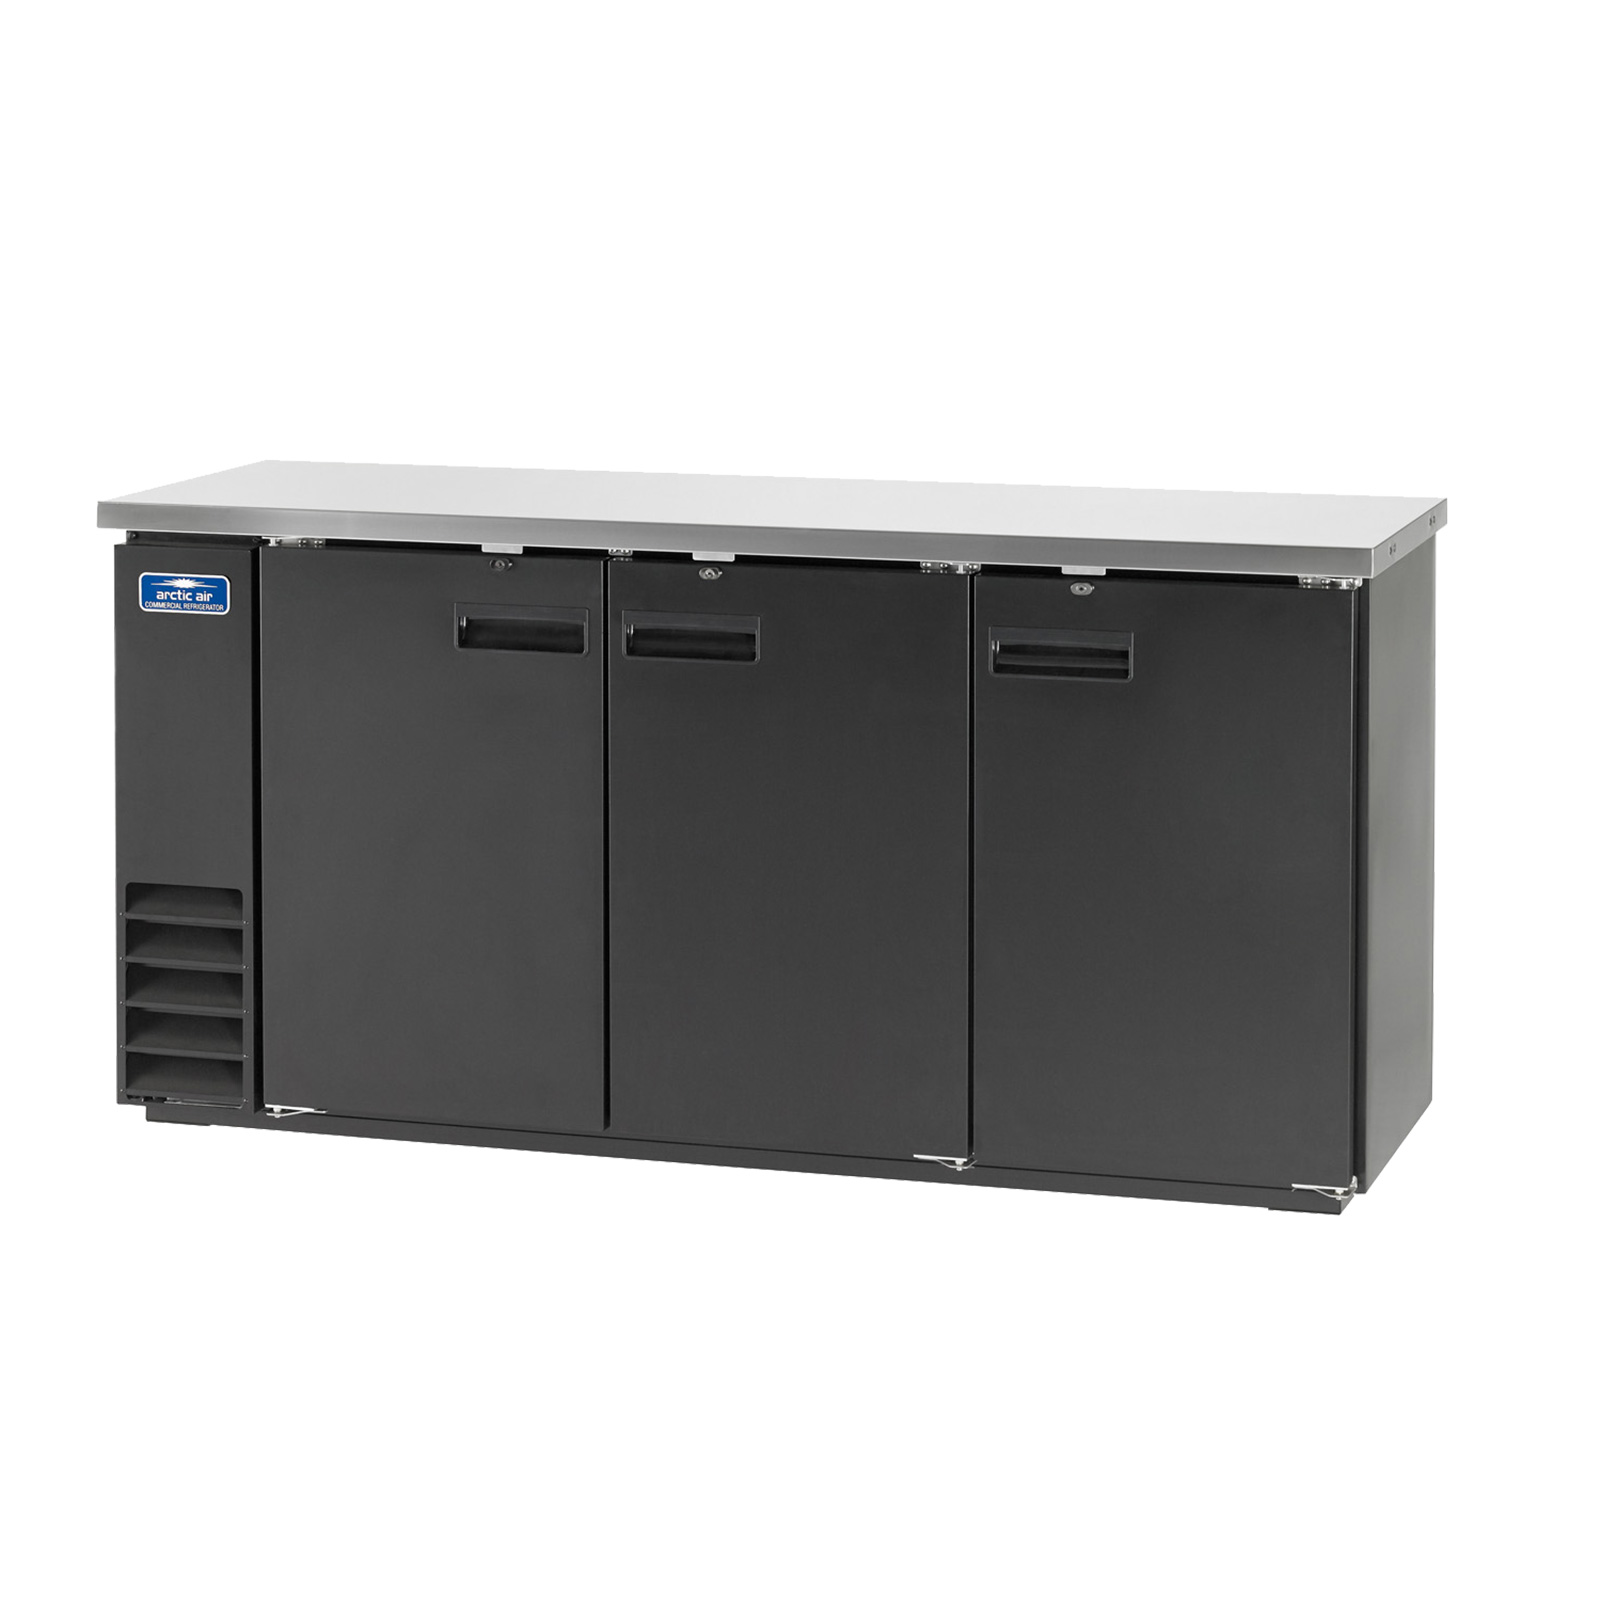 Arctic Air ABB72 back bar cabinet, refrigerated